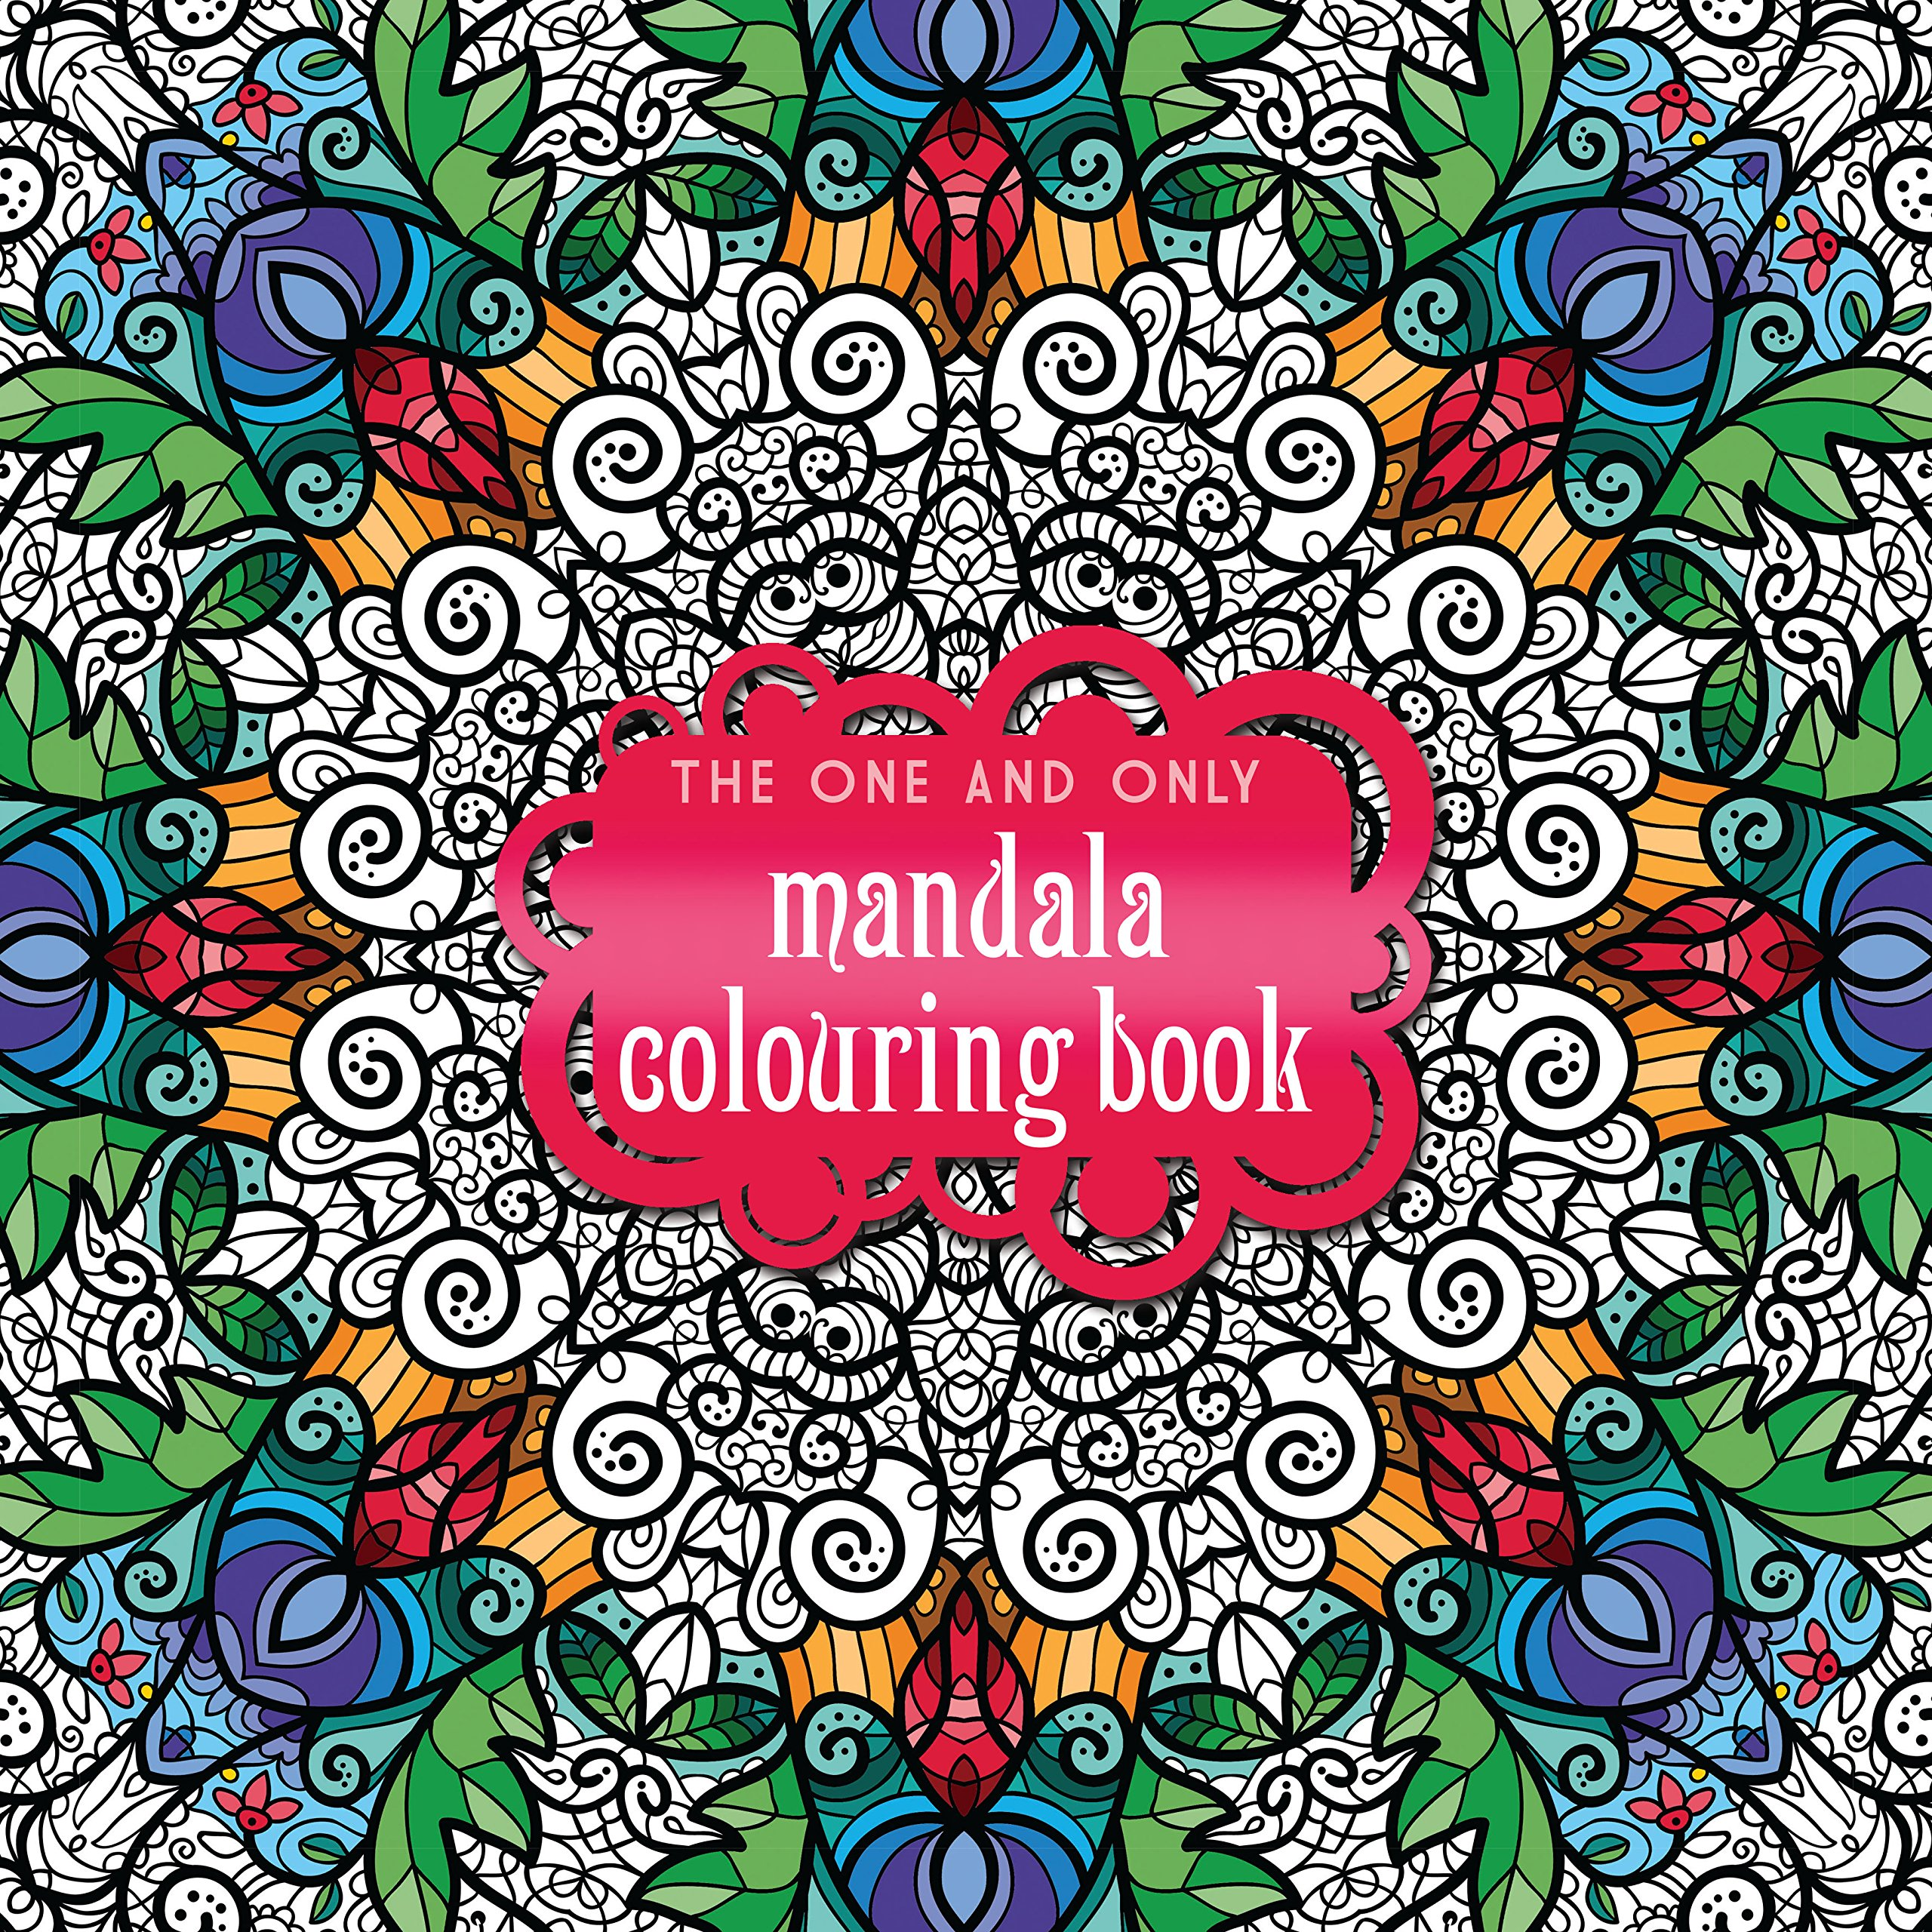 The One And Only Mandala Colouring Book Coloring Amazoncouk Phoenix Yard Books